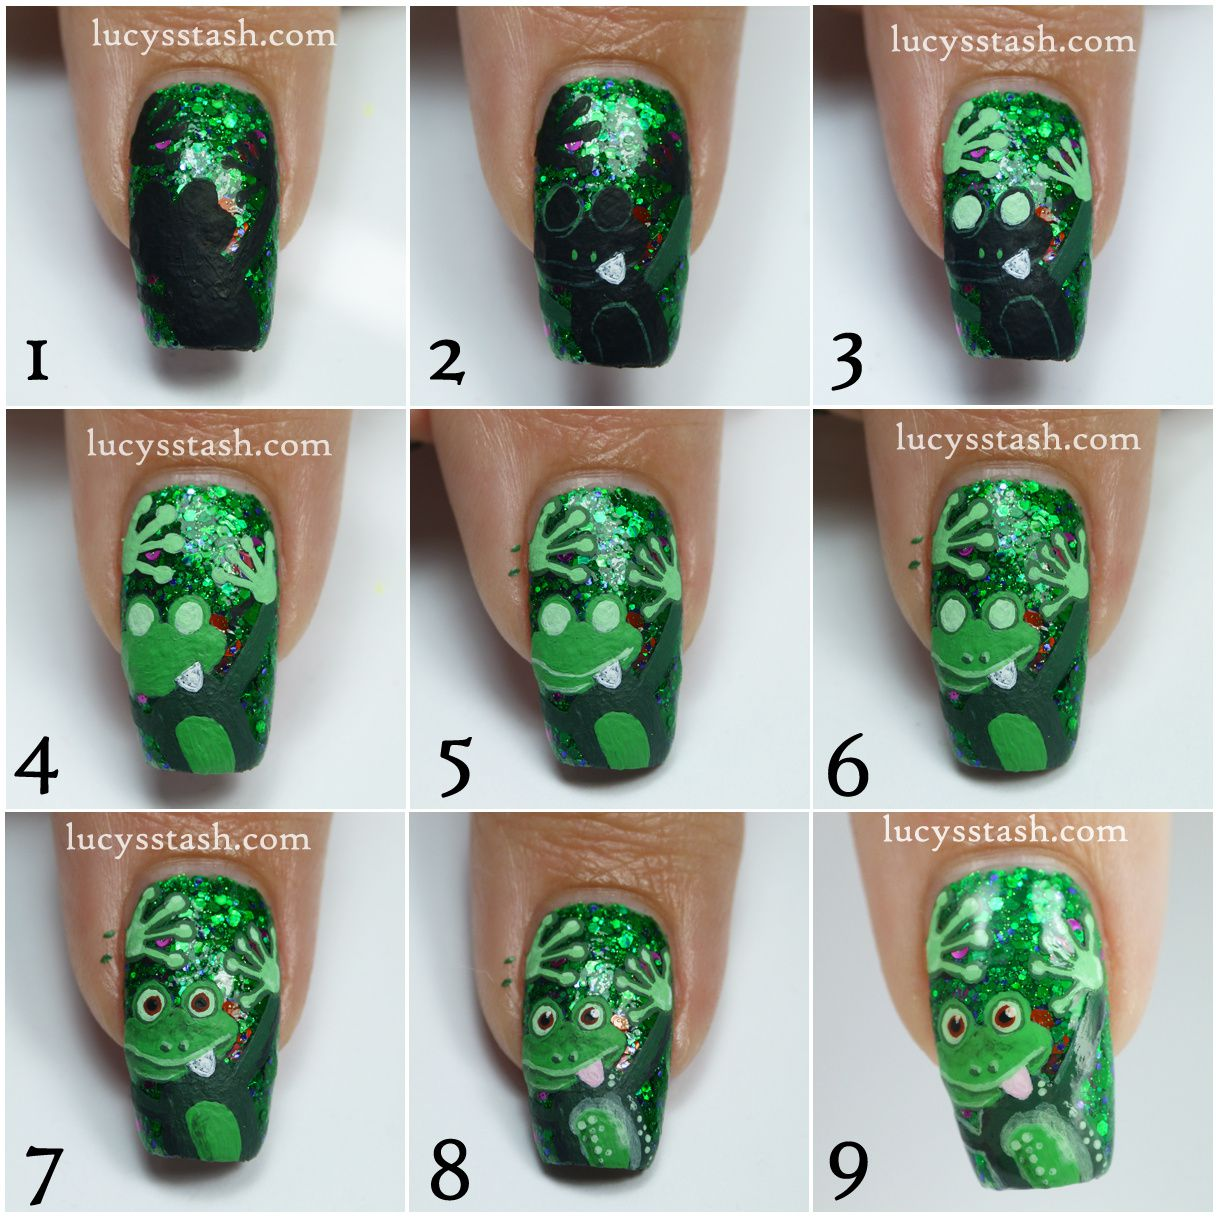 Cheeky Frog Nail Art Design Feat. Femme Fatale Noble